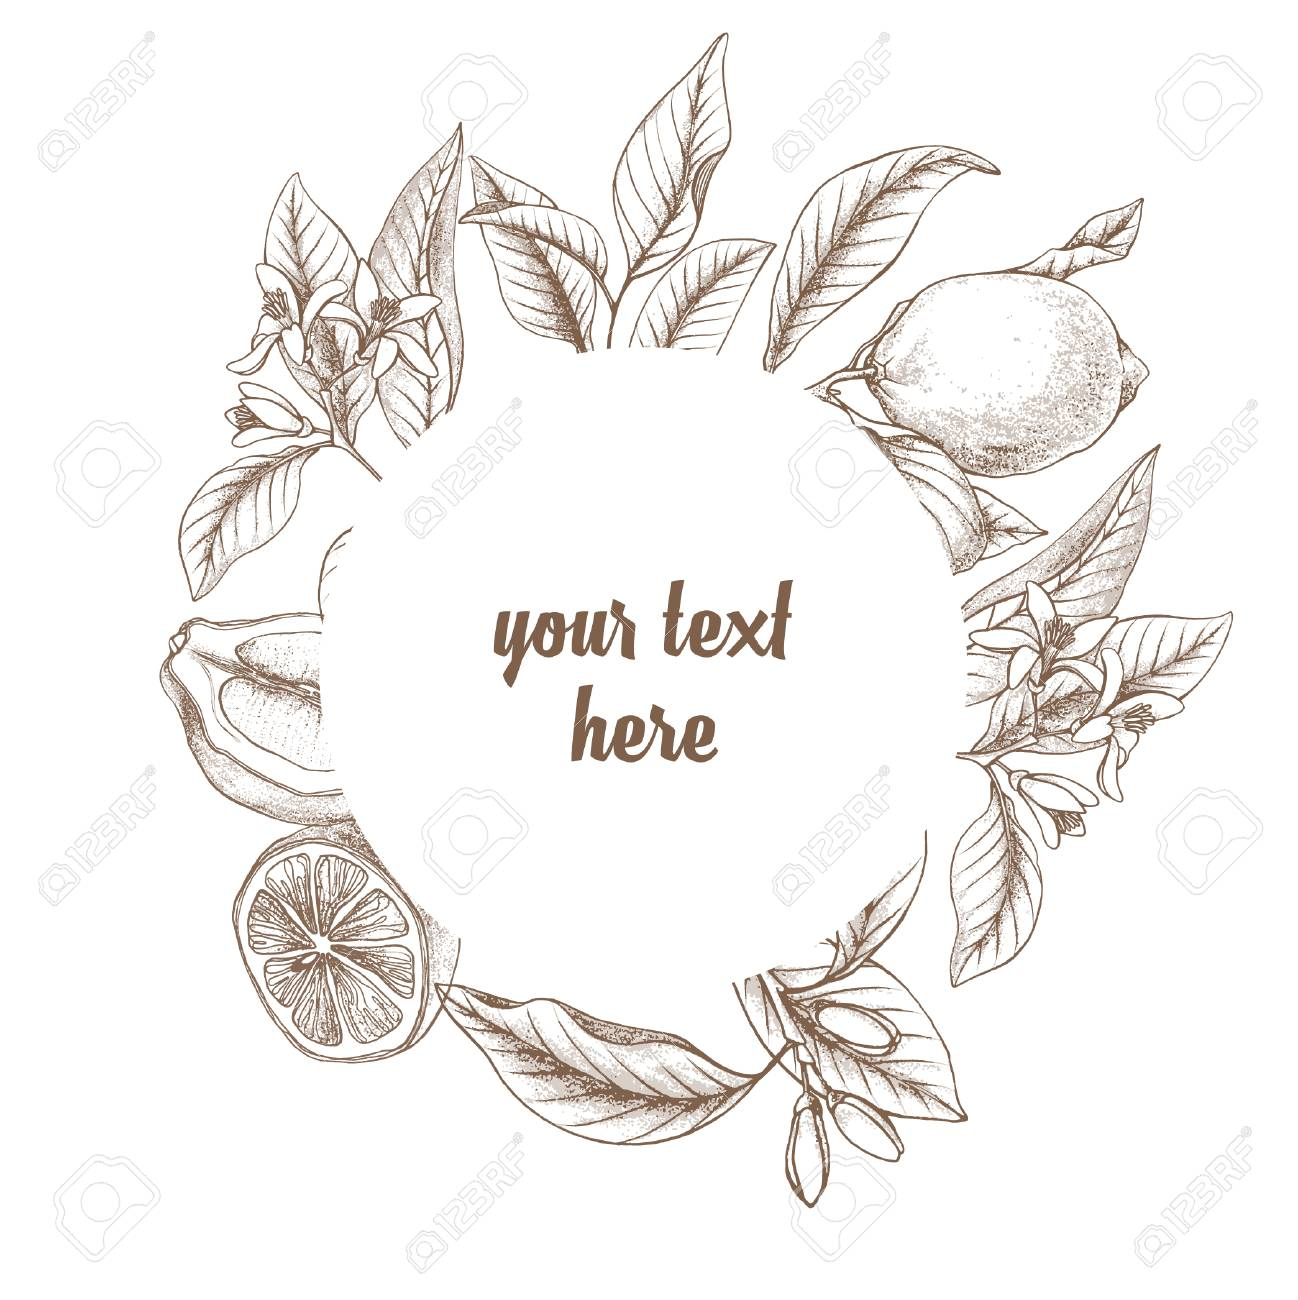 Vintage Botanical Lemon Round Frame Background Hand Drawn Outline